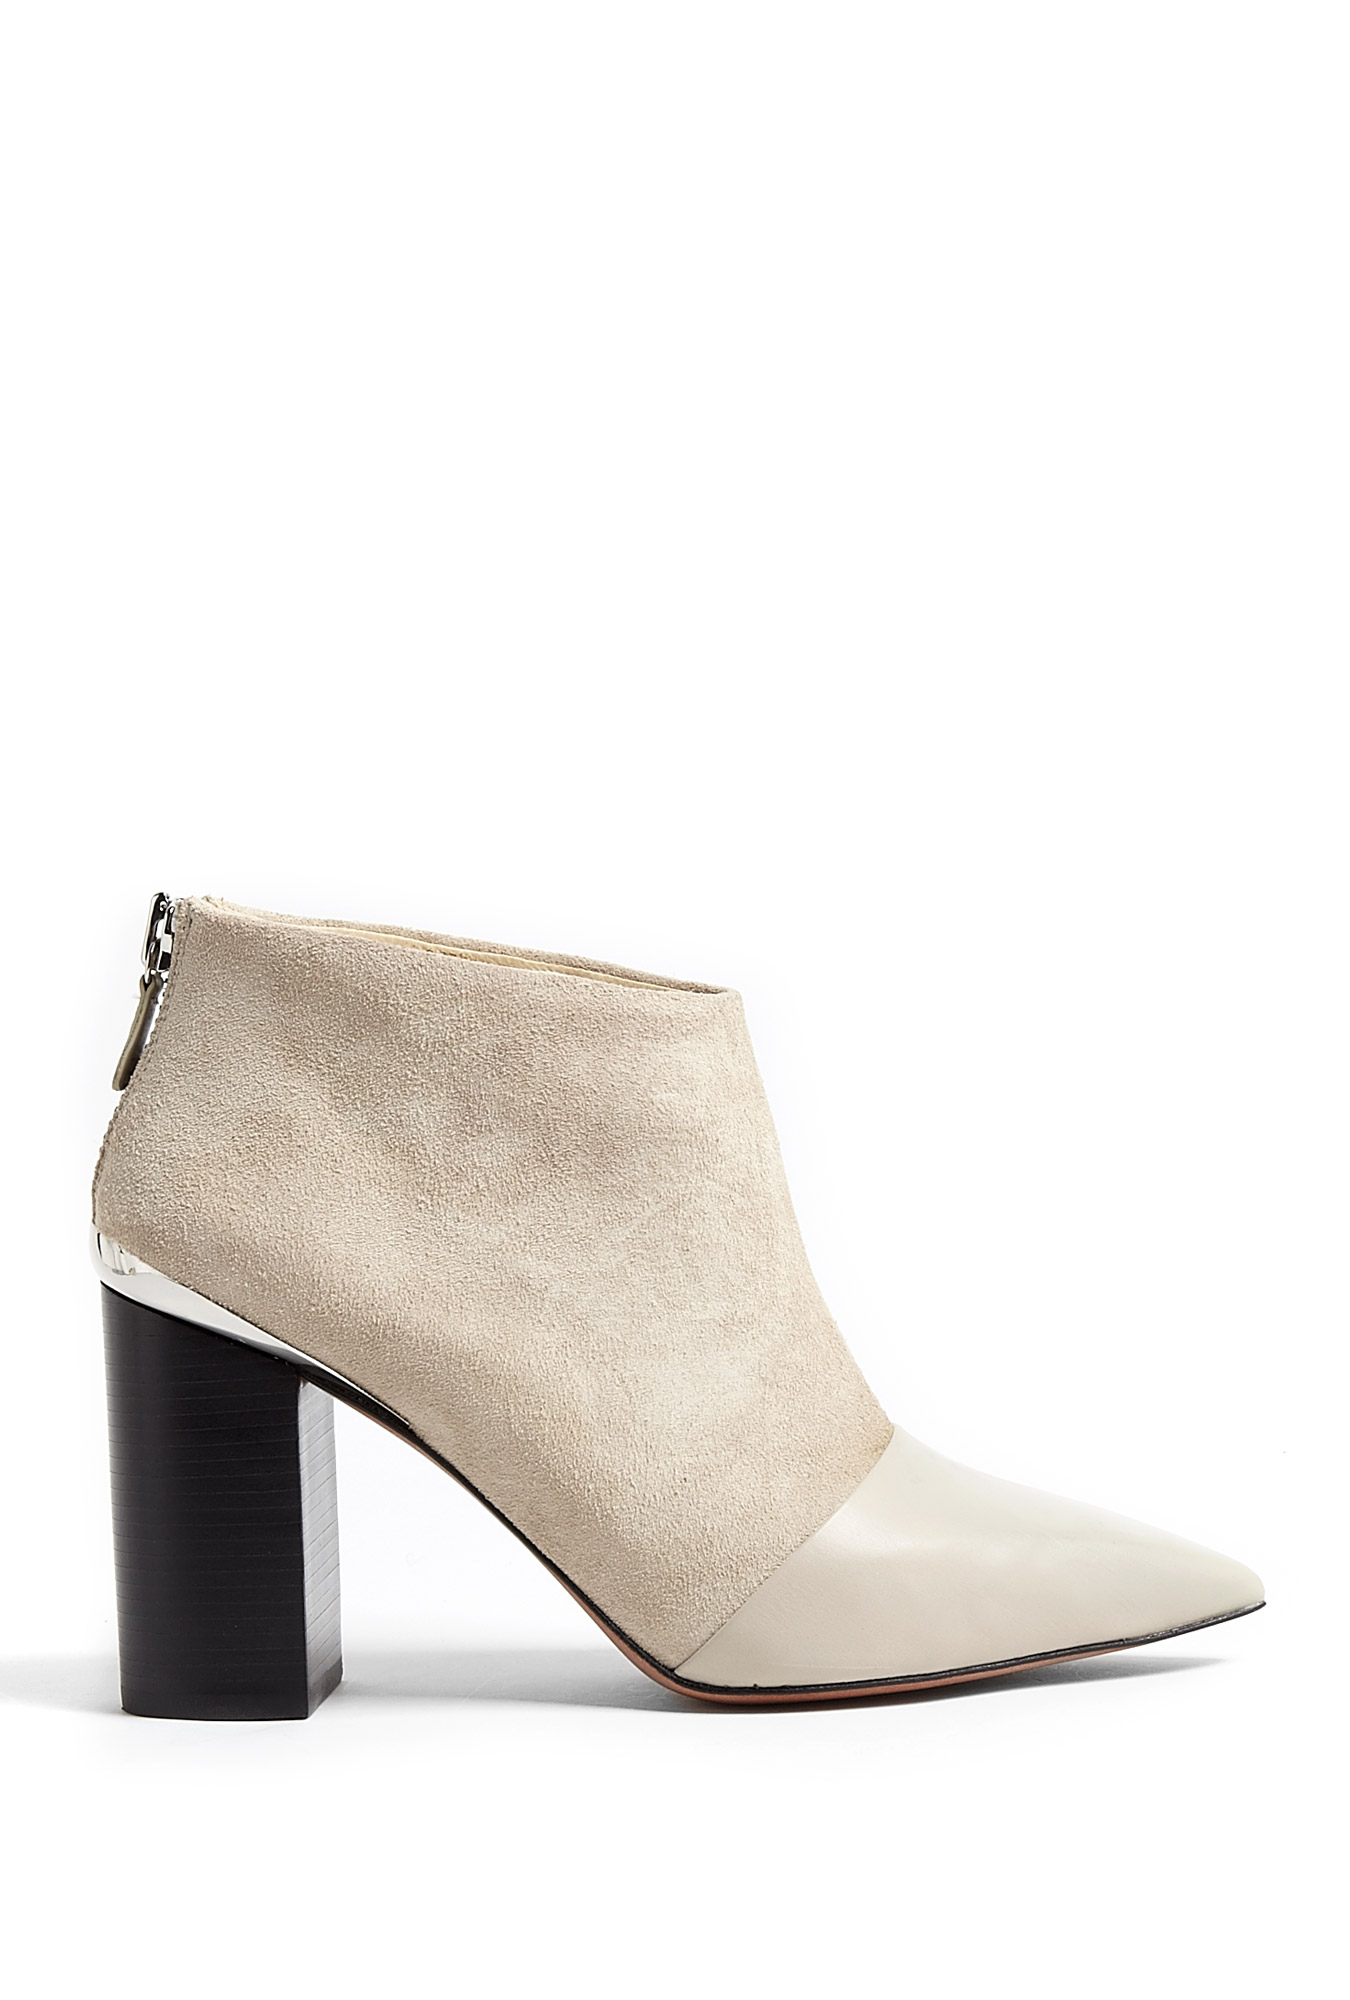 see by chlo opale leather pointed toe suede ankle boots in beige lyst. Black Bedroom Furniture Sets. Home Design Ideas